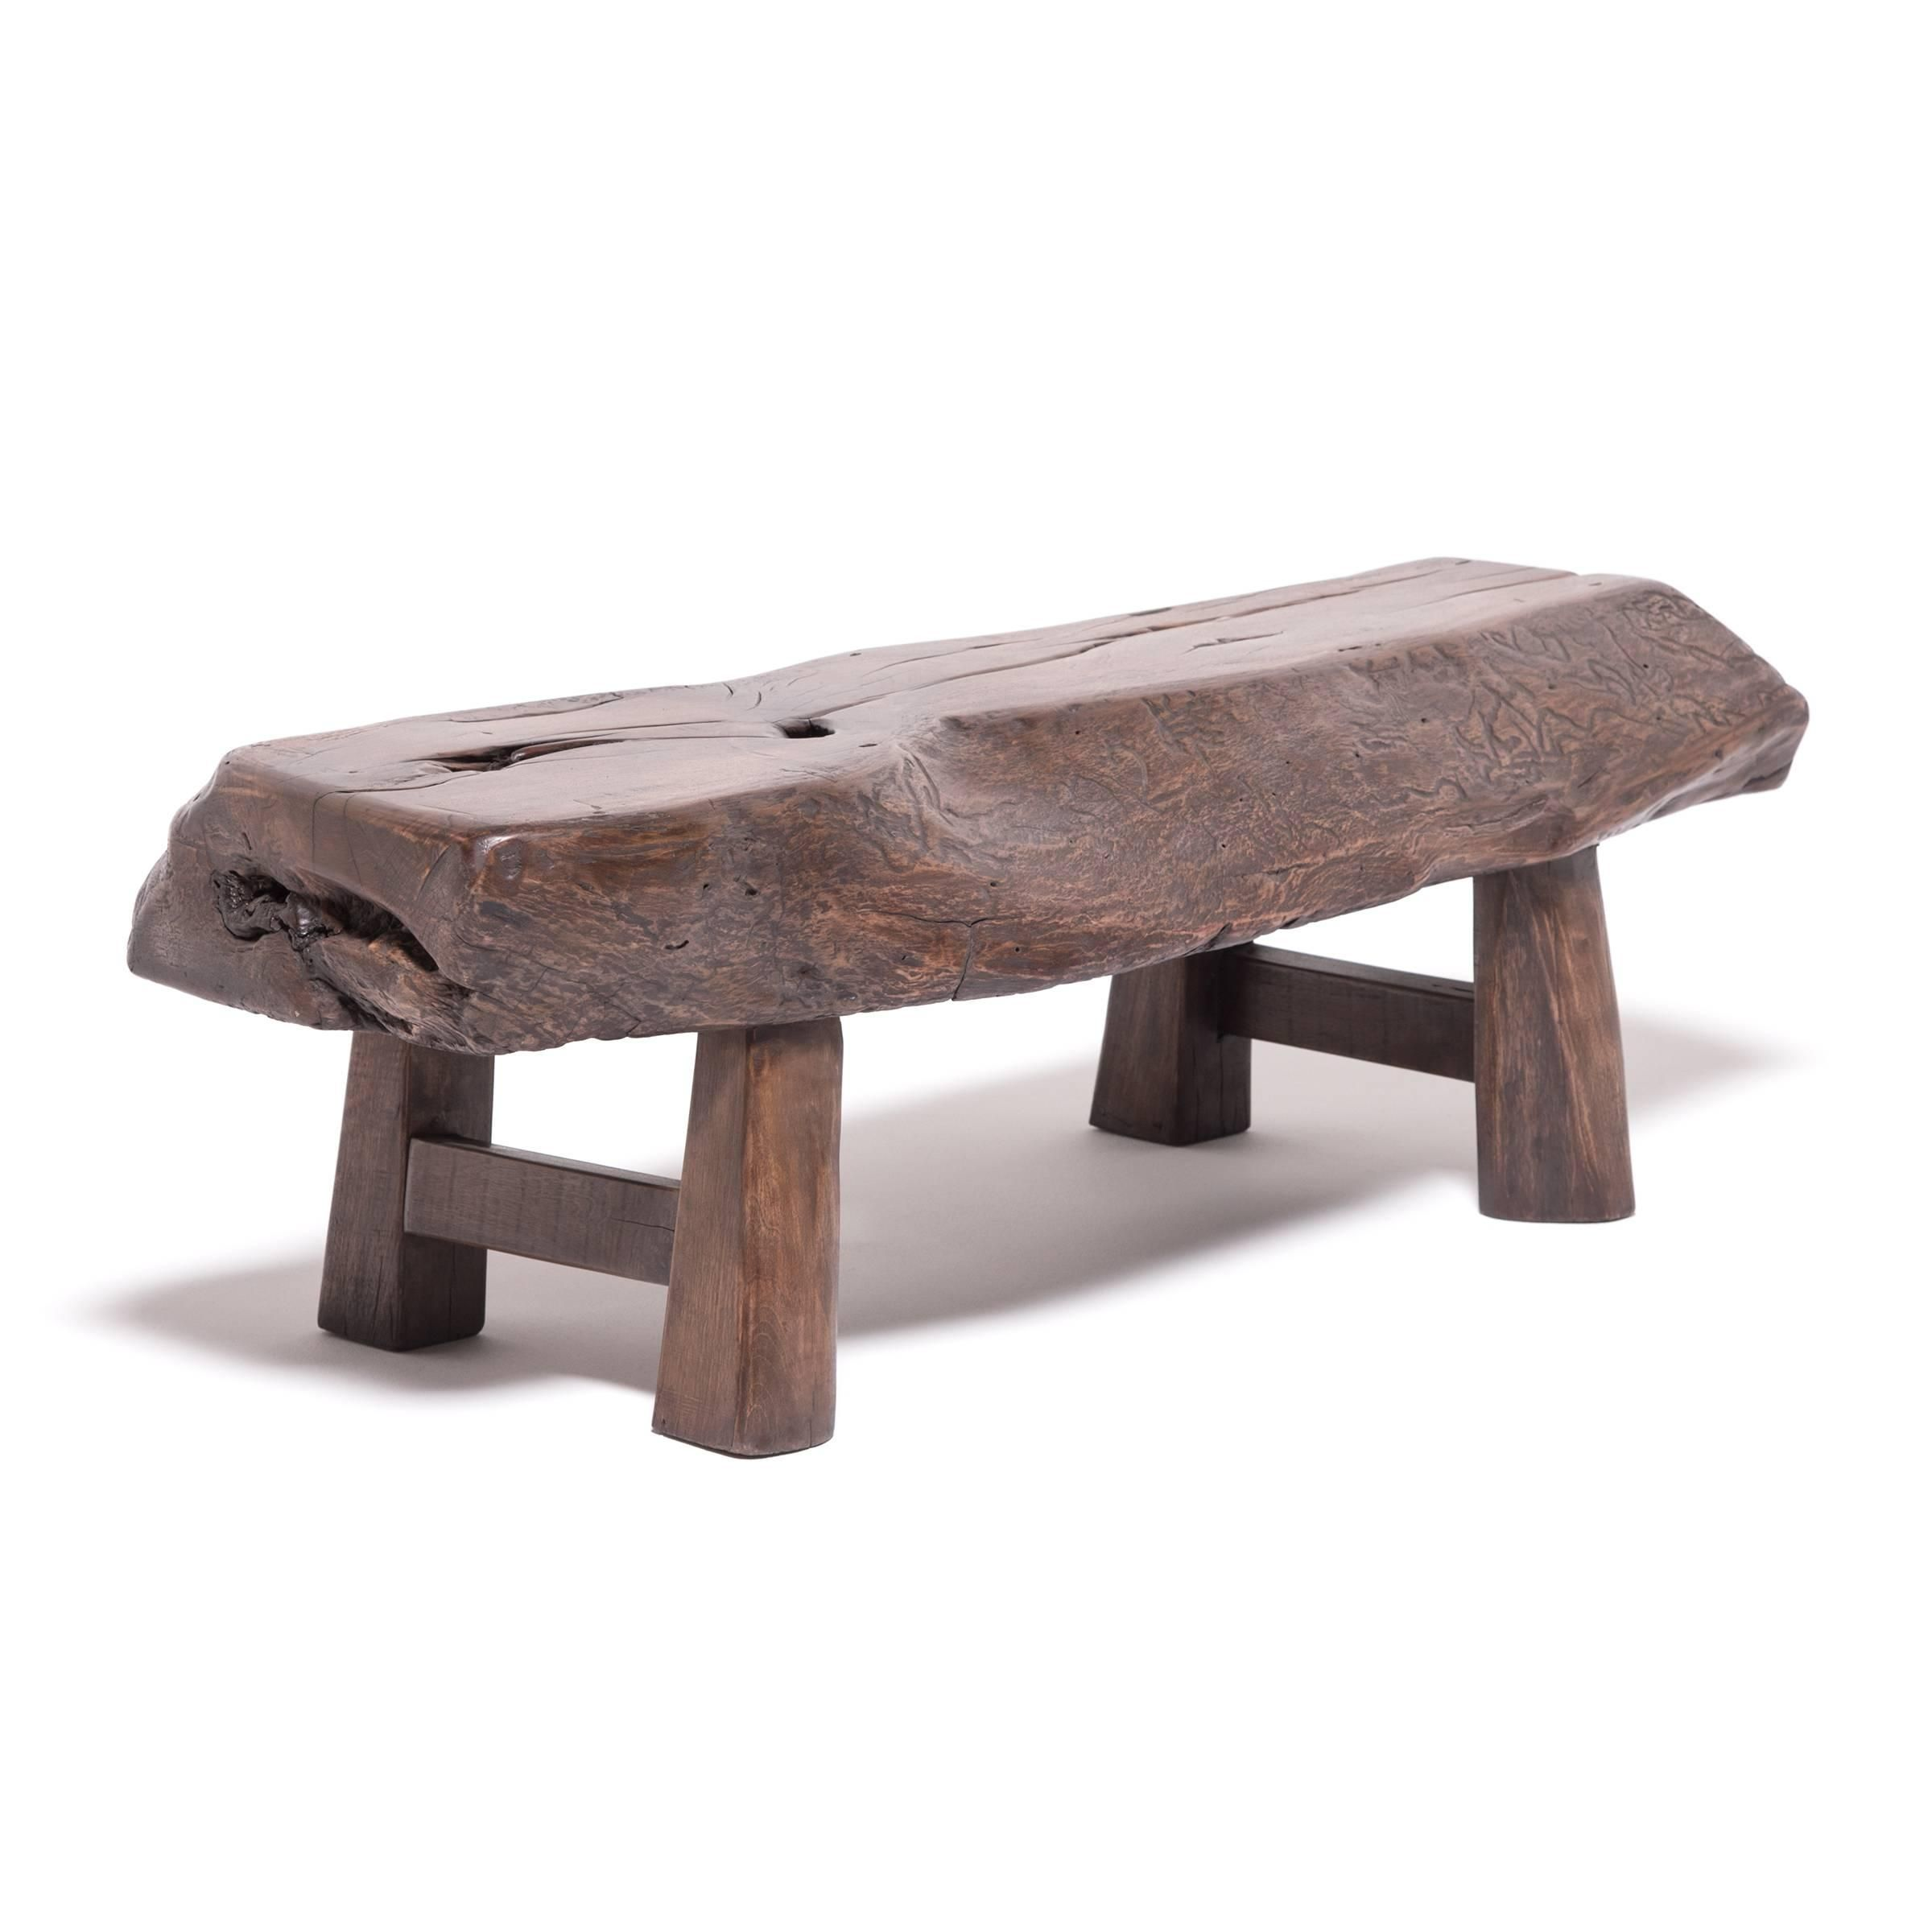 Early 20th Century Shanxi Porch Bench For Sale At 1stdibs Tree Furniture Benches For Sale Art Furniture